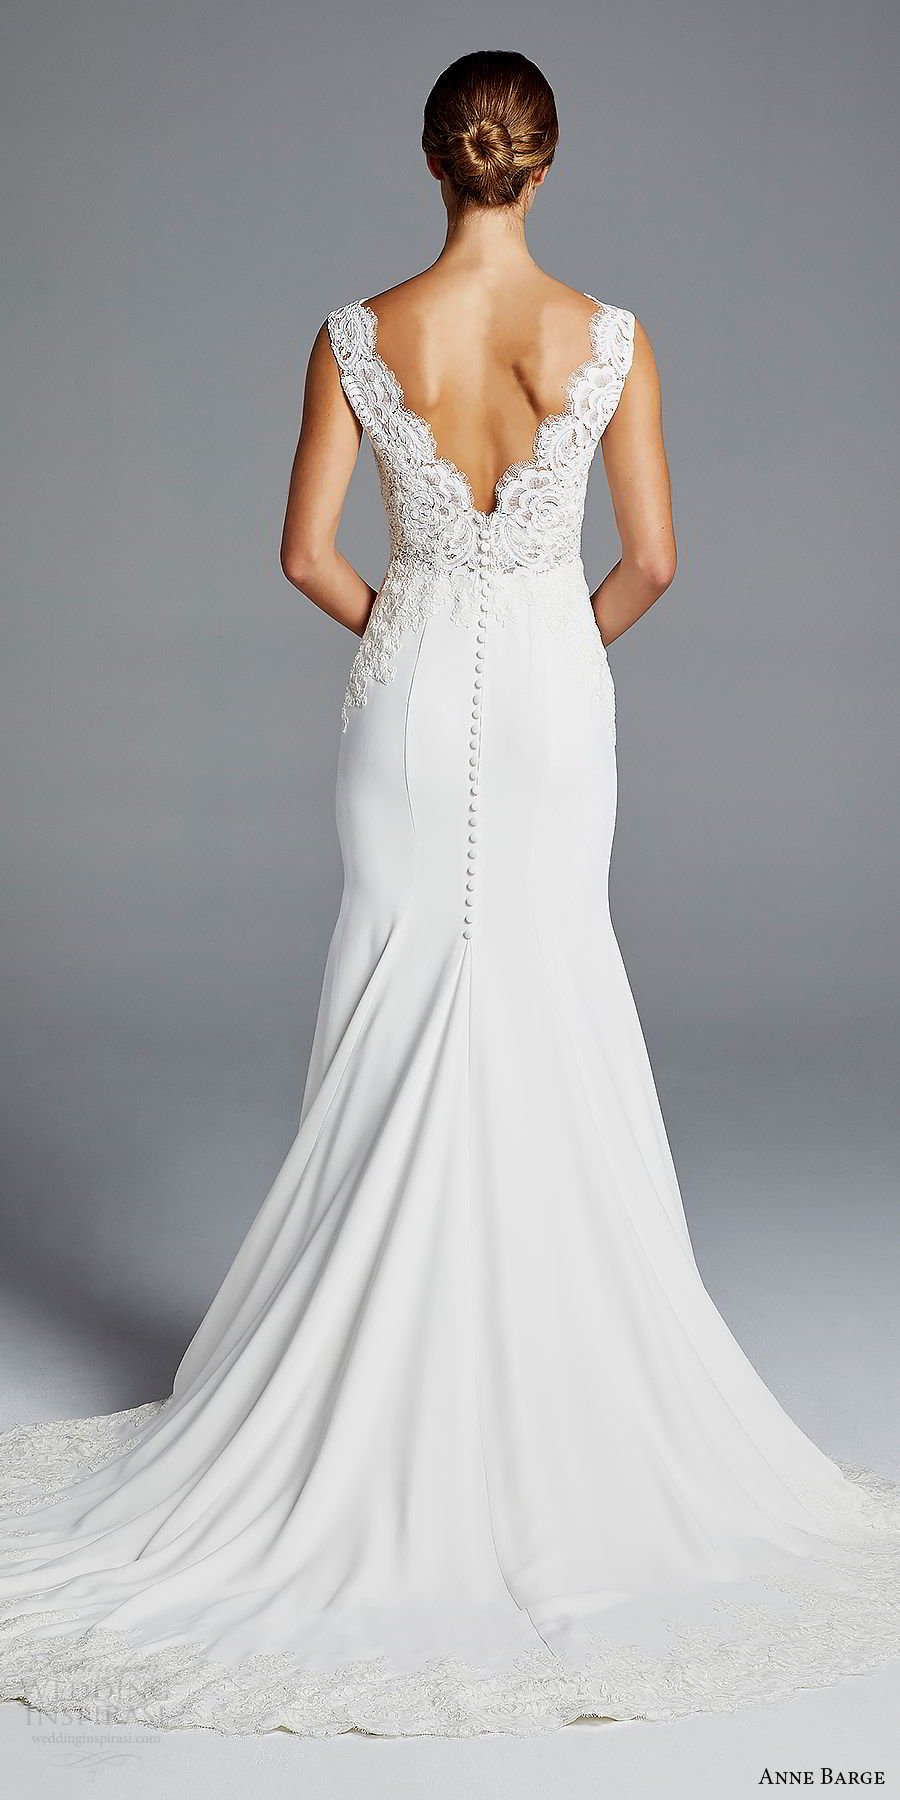 anne barge bridal spring 2019 sleeveless thick lace straps deep v neck embellished bodice sheath wedding dress (lana) bv v back chapel train chic elegant